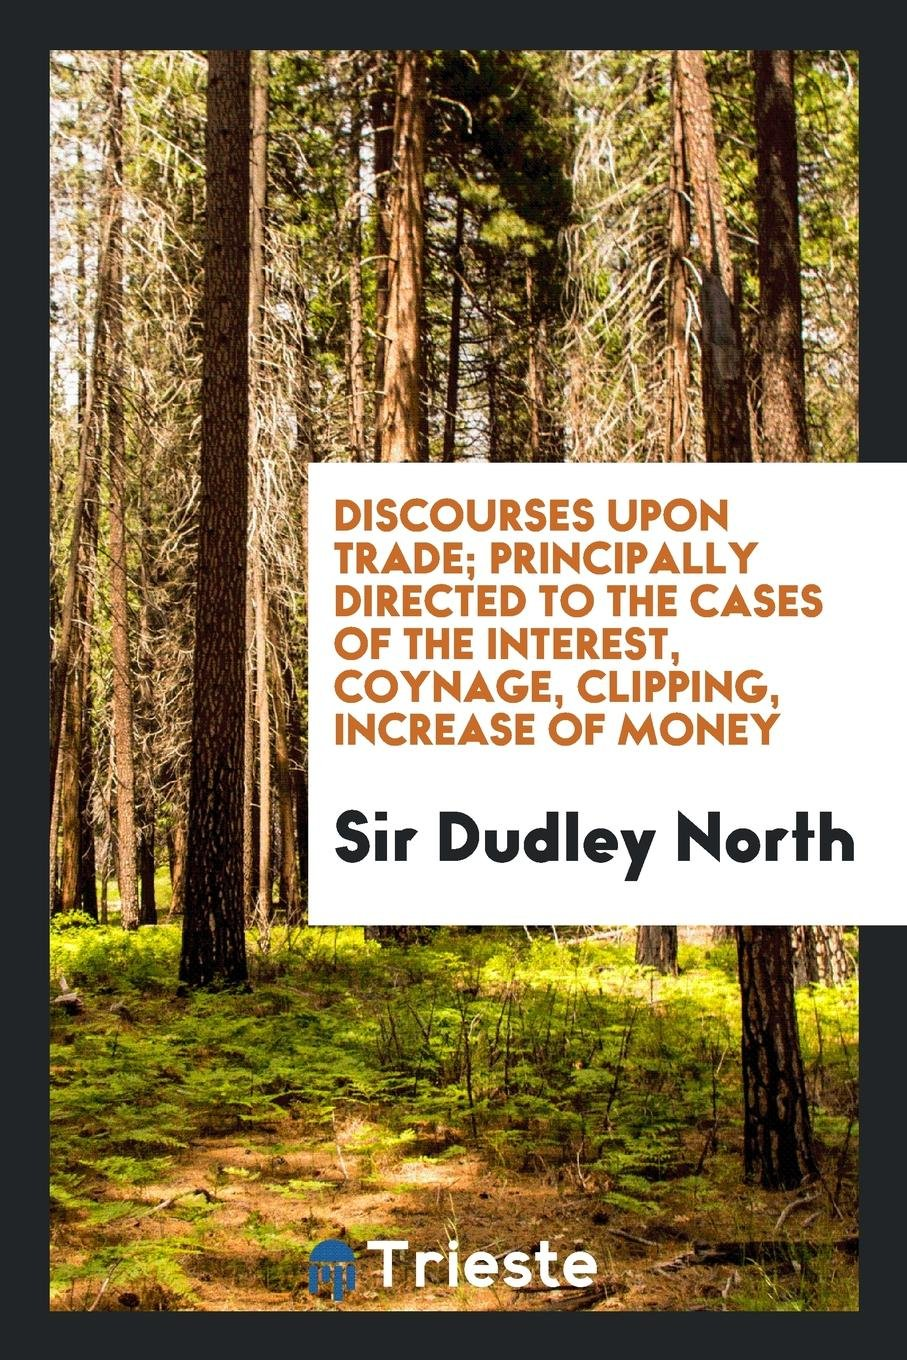 Discourses upon trade; Principally Directed to the cases of the Interest, Coynage, Clipping, Increase of Money pdf